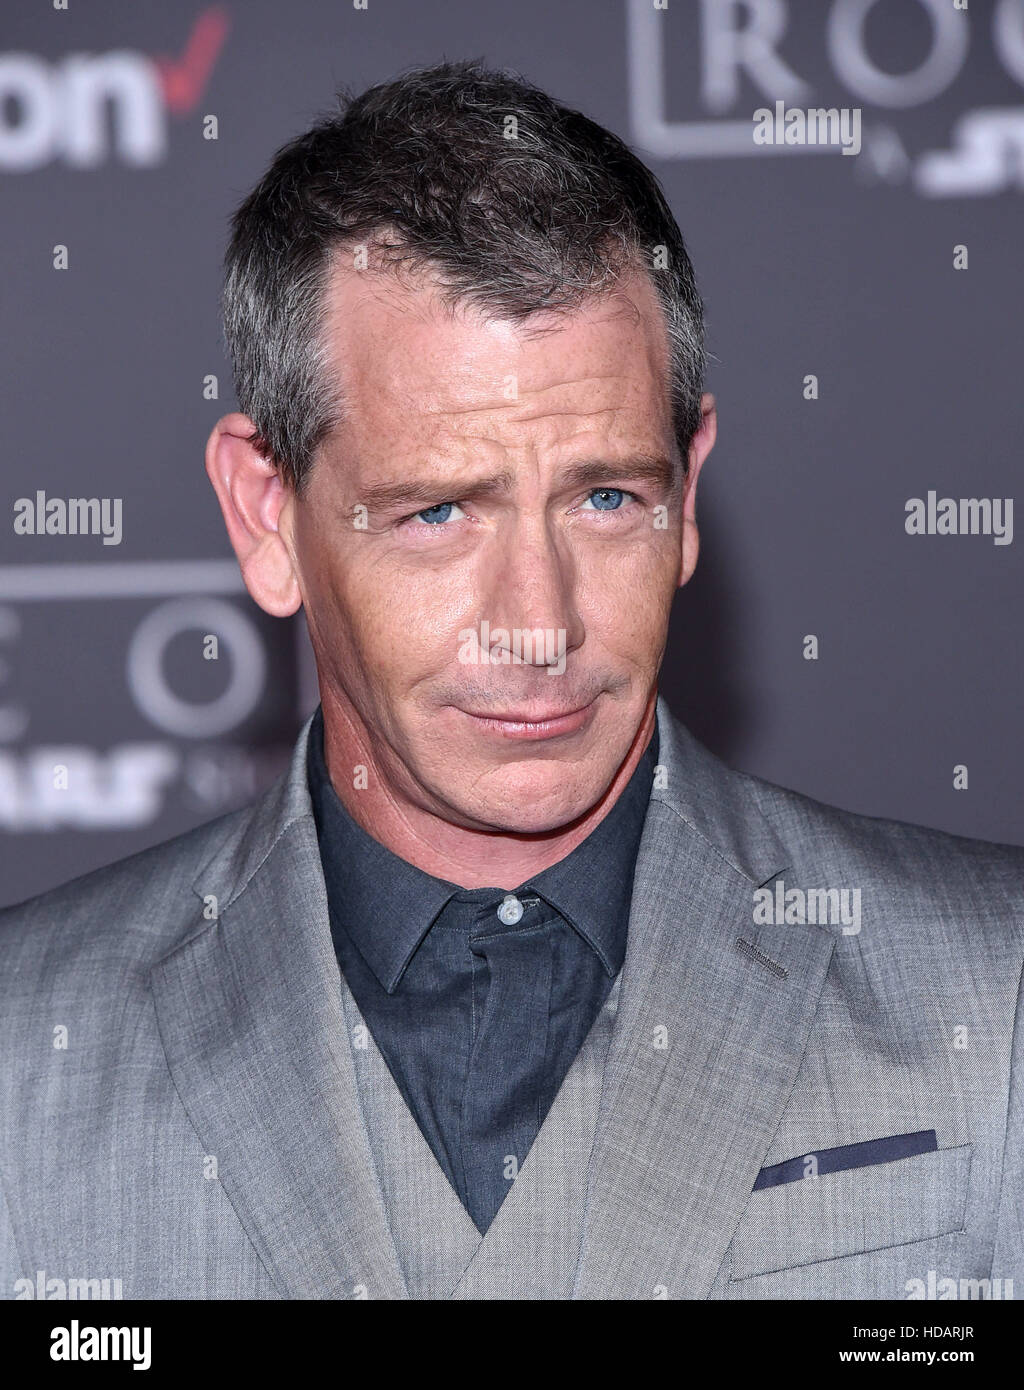 "Hollywood, Californie, USA. Dec 11, 2016. Ben Mendelsohn arrive pour la première du film ""Voyous Une : Photo Stock"